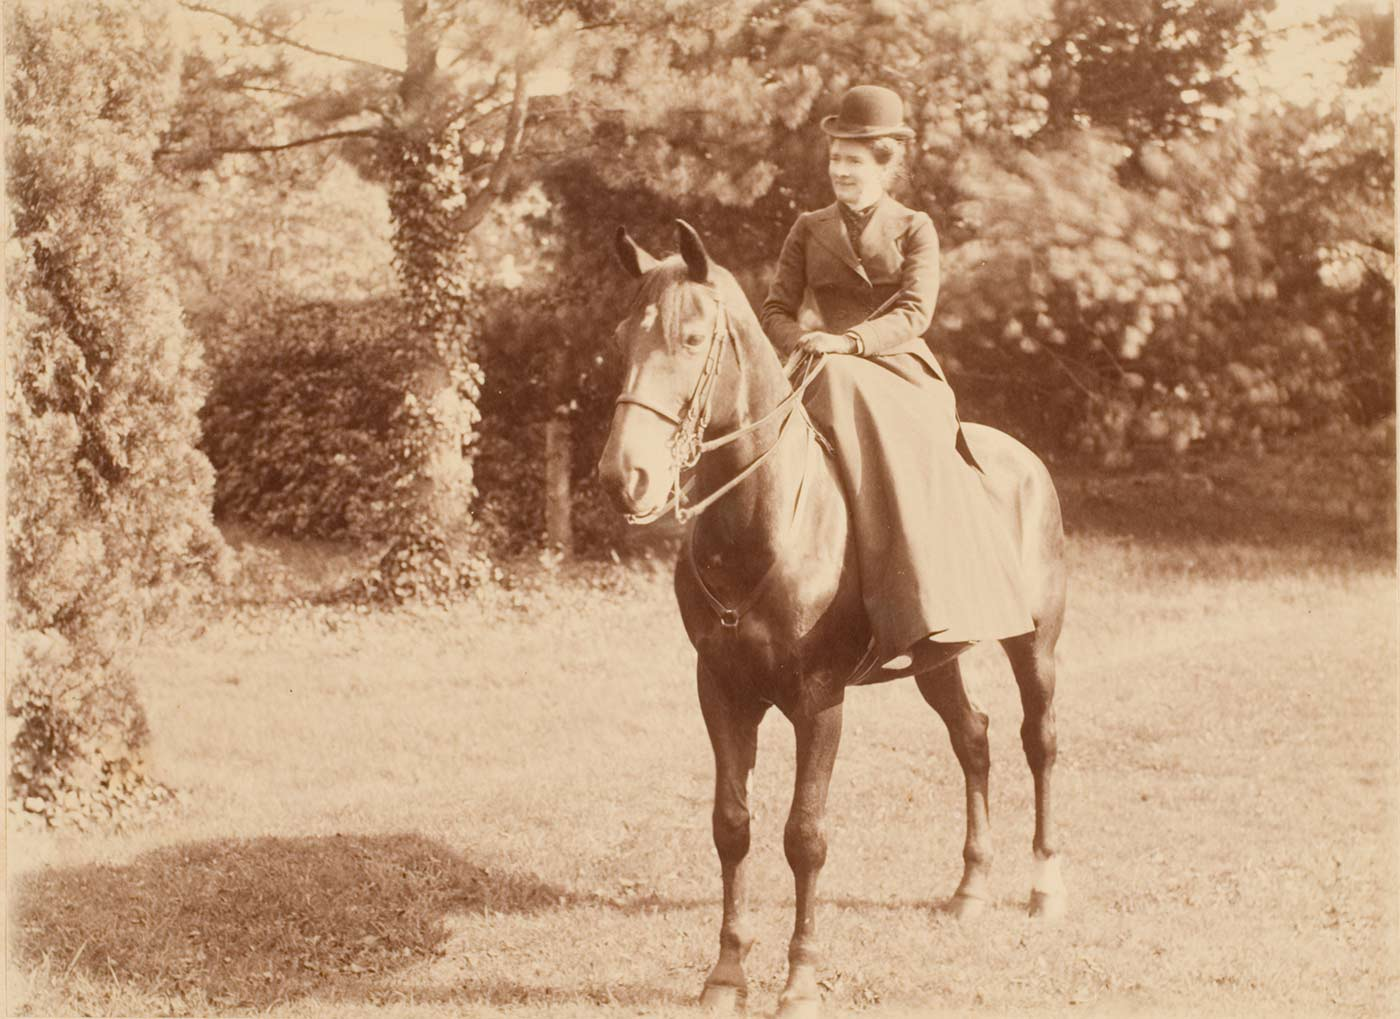 Sepia photo of a woman sitting side-saddle on a horse. She wears a long skirt, tailored jacket and hat.